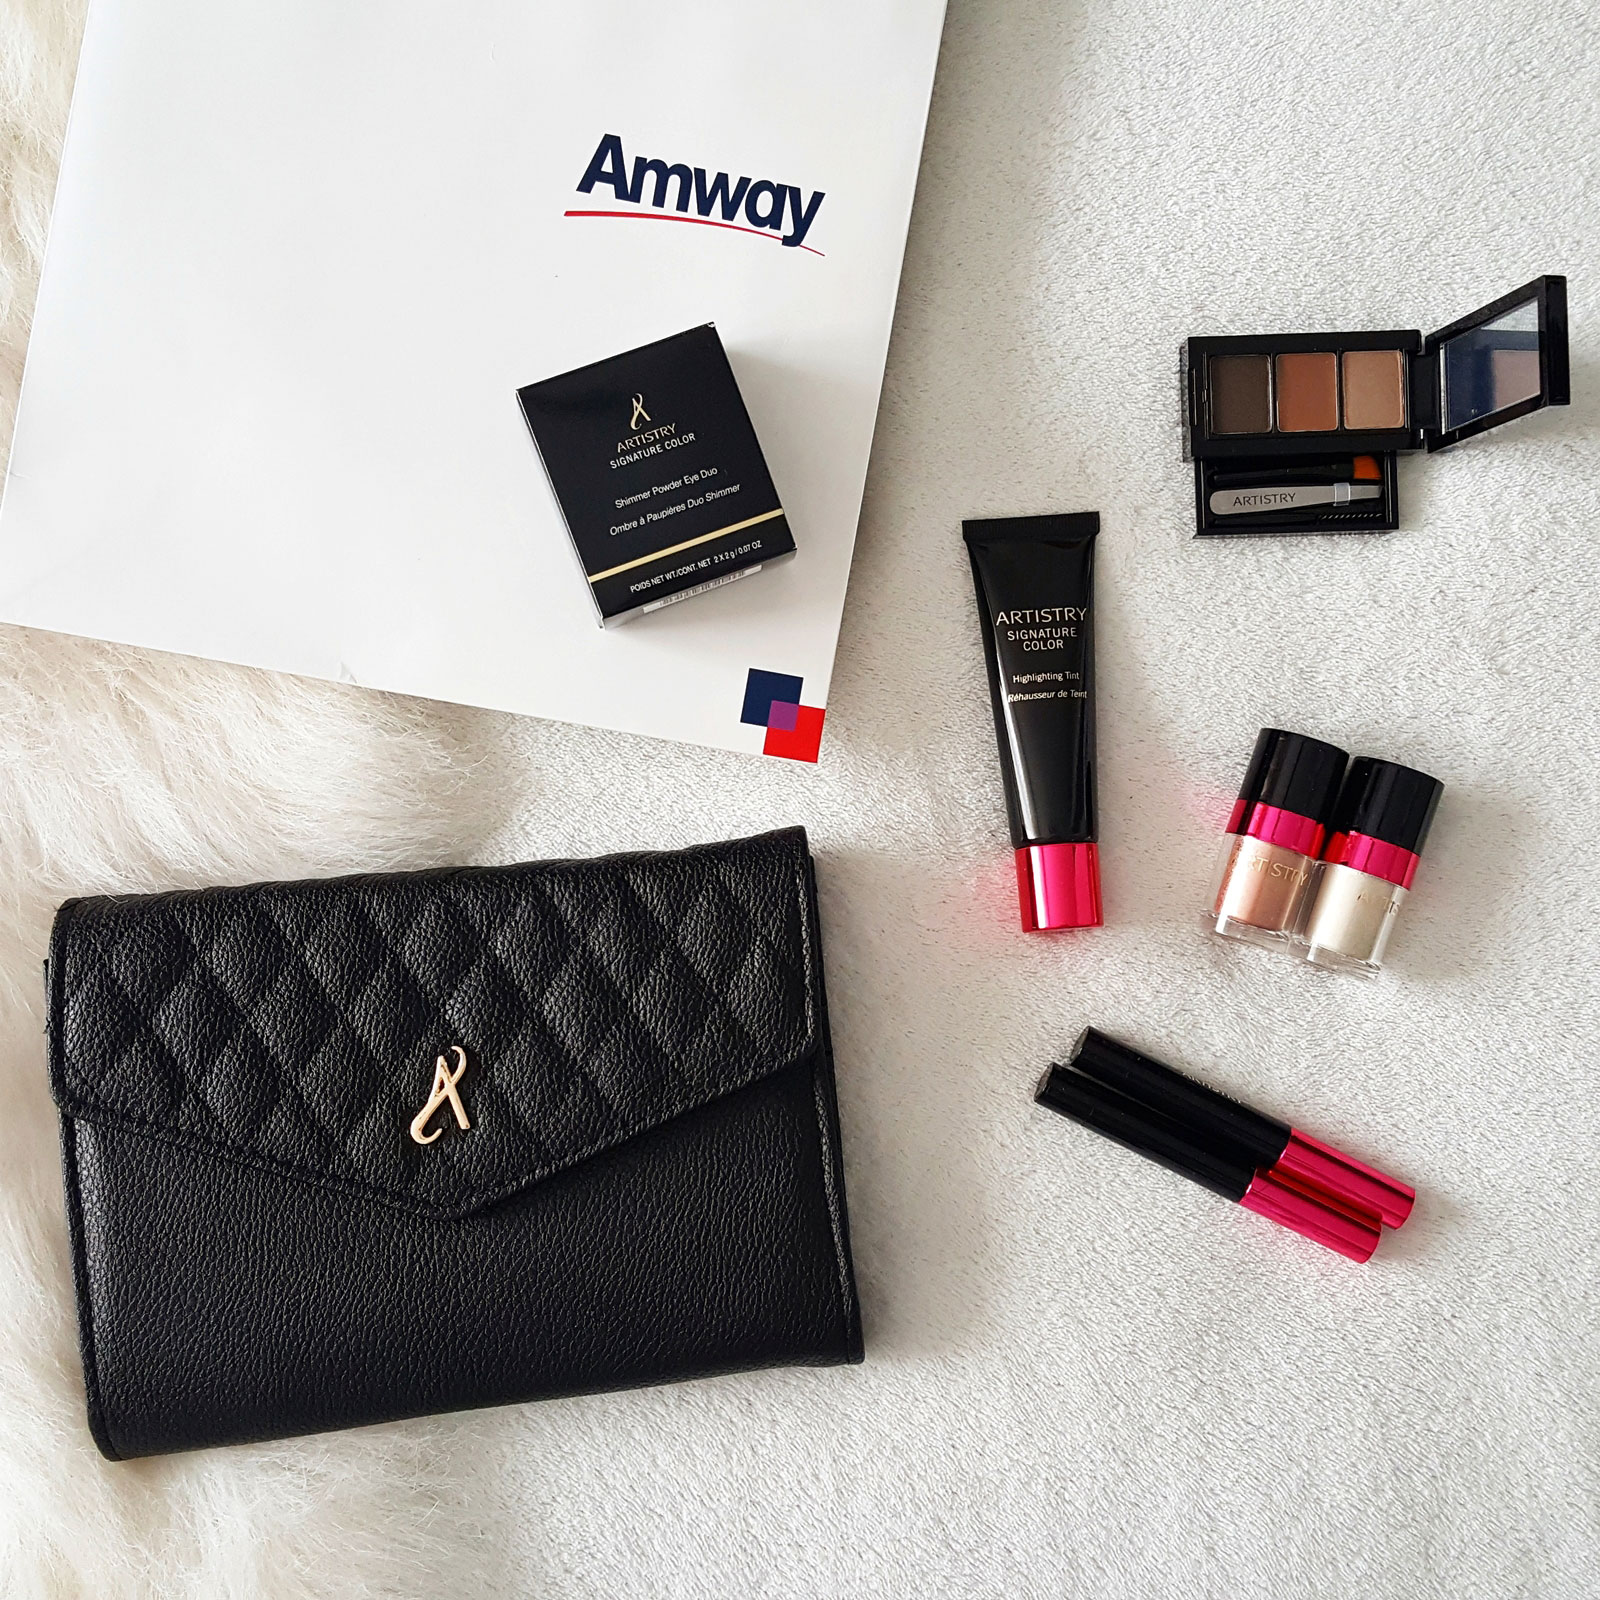 3.Artistry.Amway